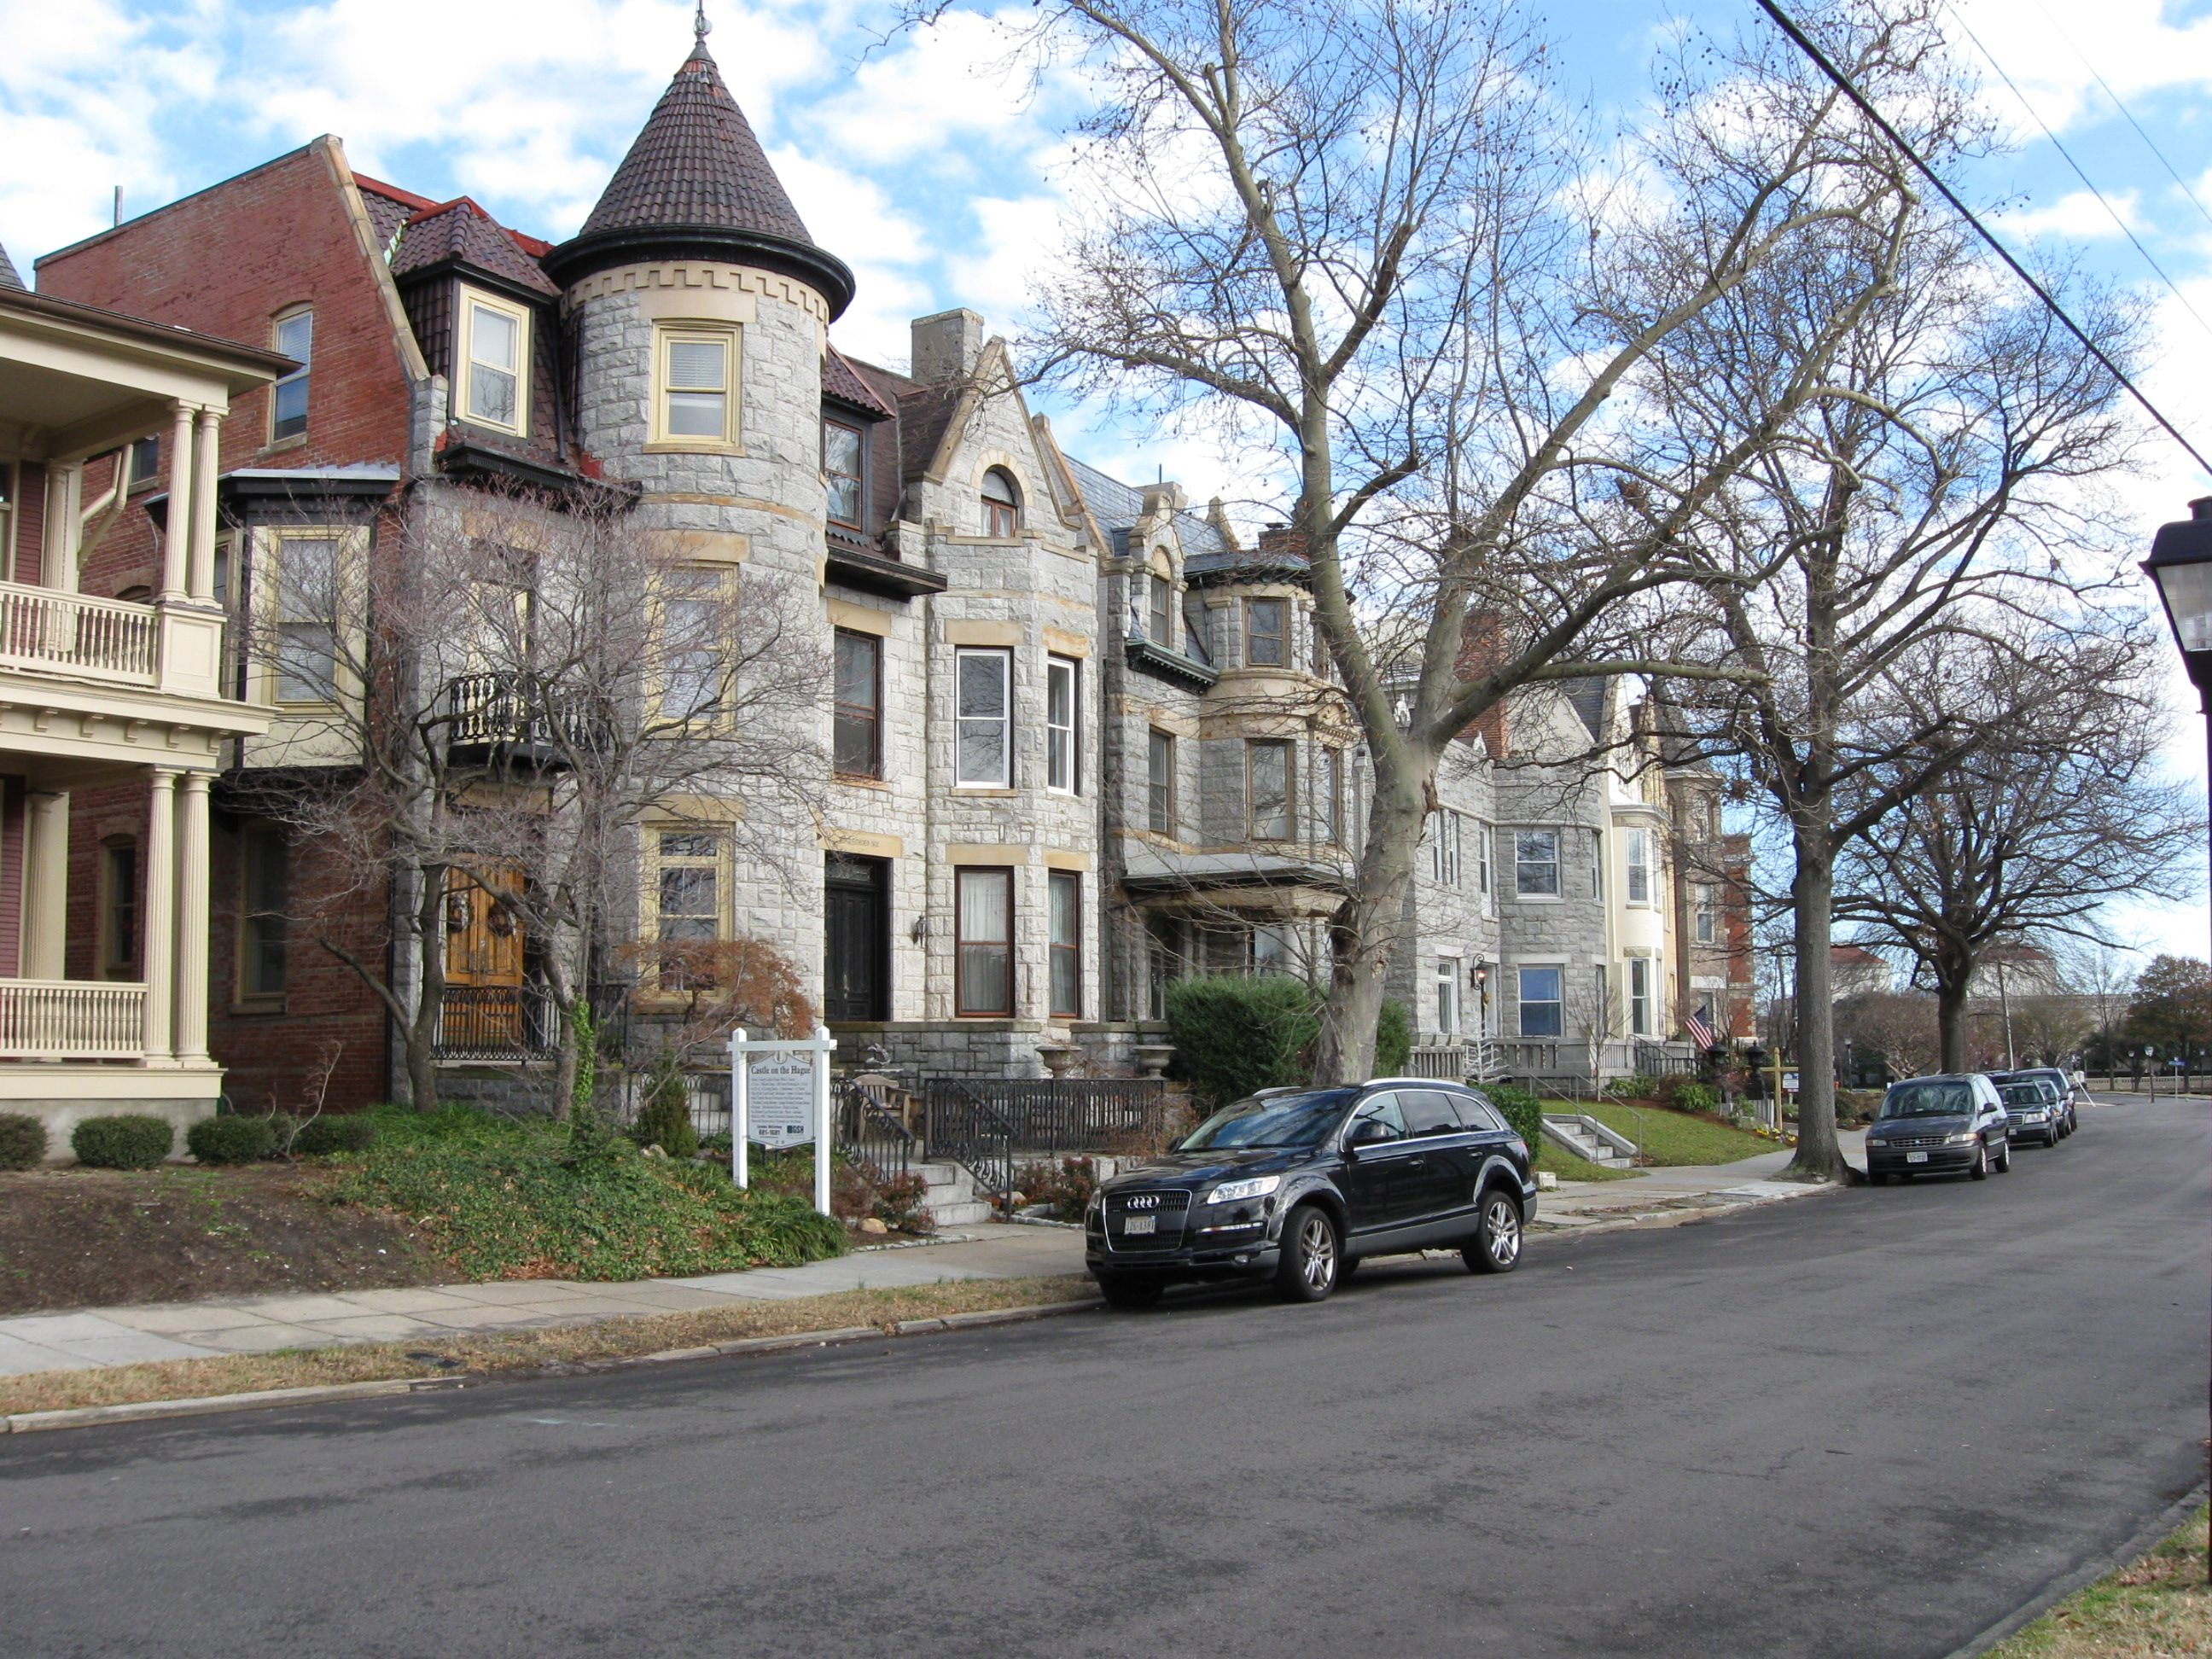 Historic Homes In Norfolk Va: Ghent Norfolk , Virginia I Keep Saying It- Take A Walk Or